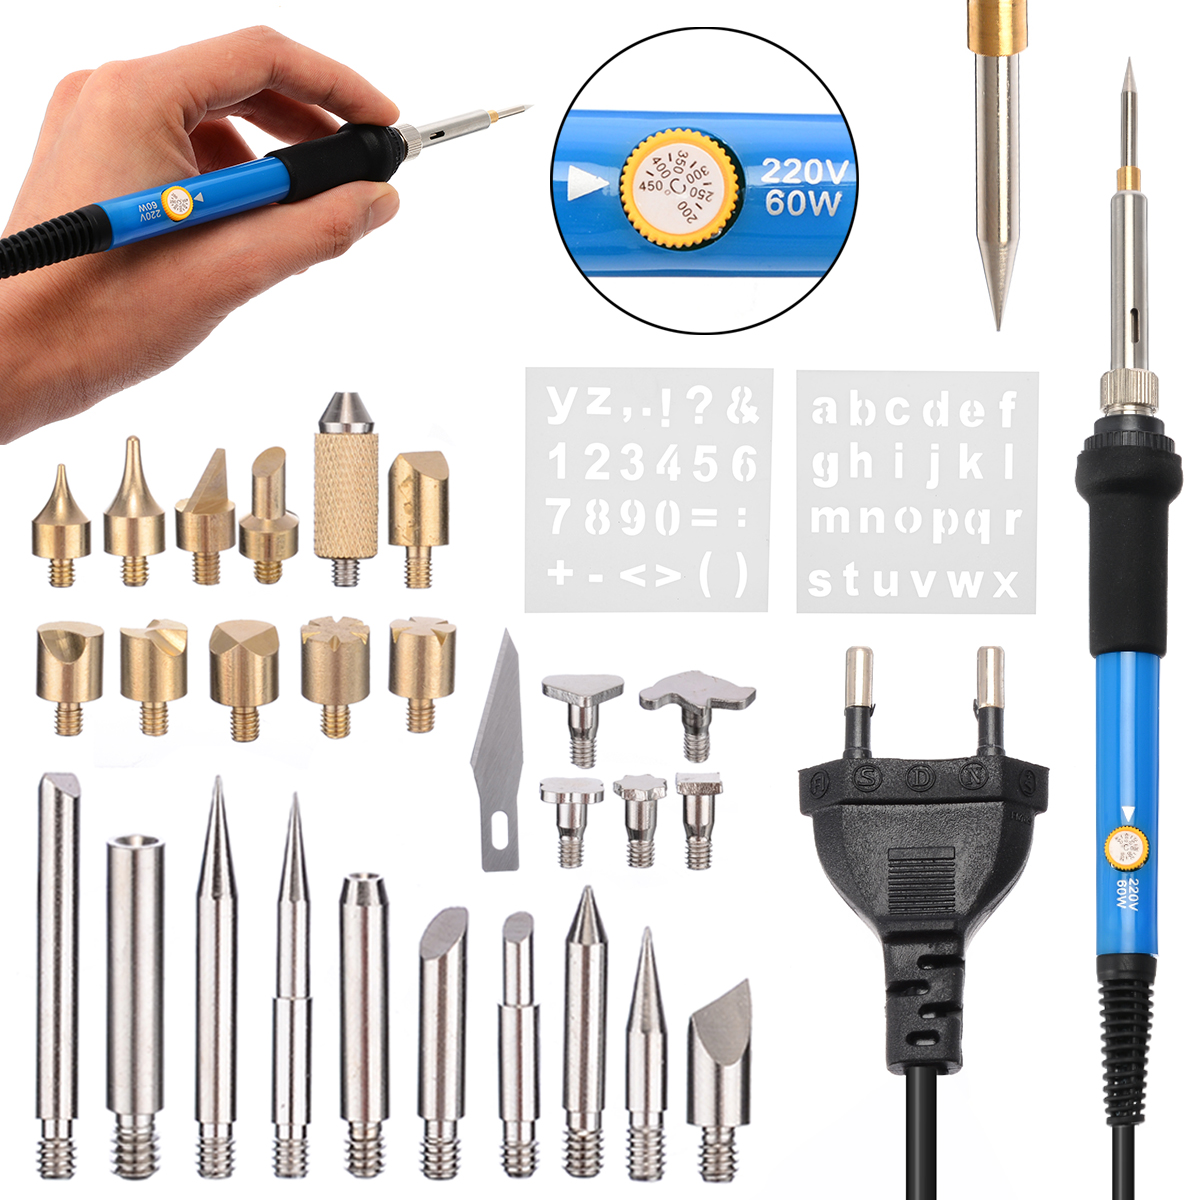 28pcs 60W Wood Burning Kit Carving Pyrography Pen Kit Adjustable Temperature Soldering Iron Welding Wood Embossing